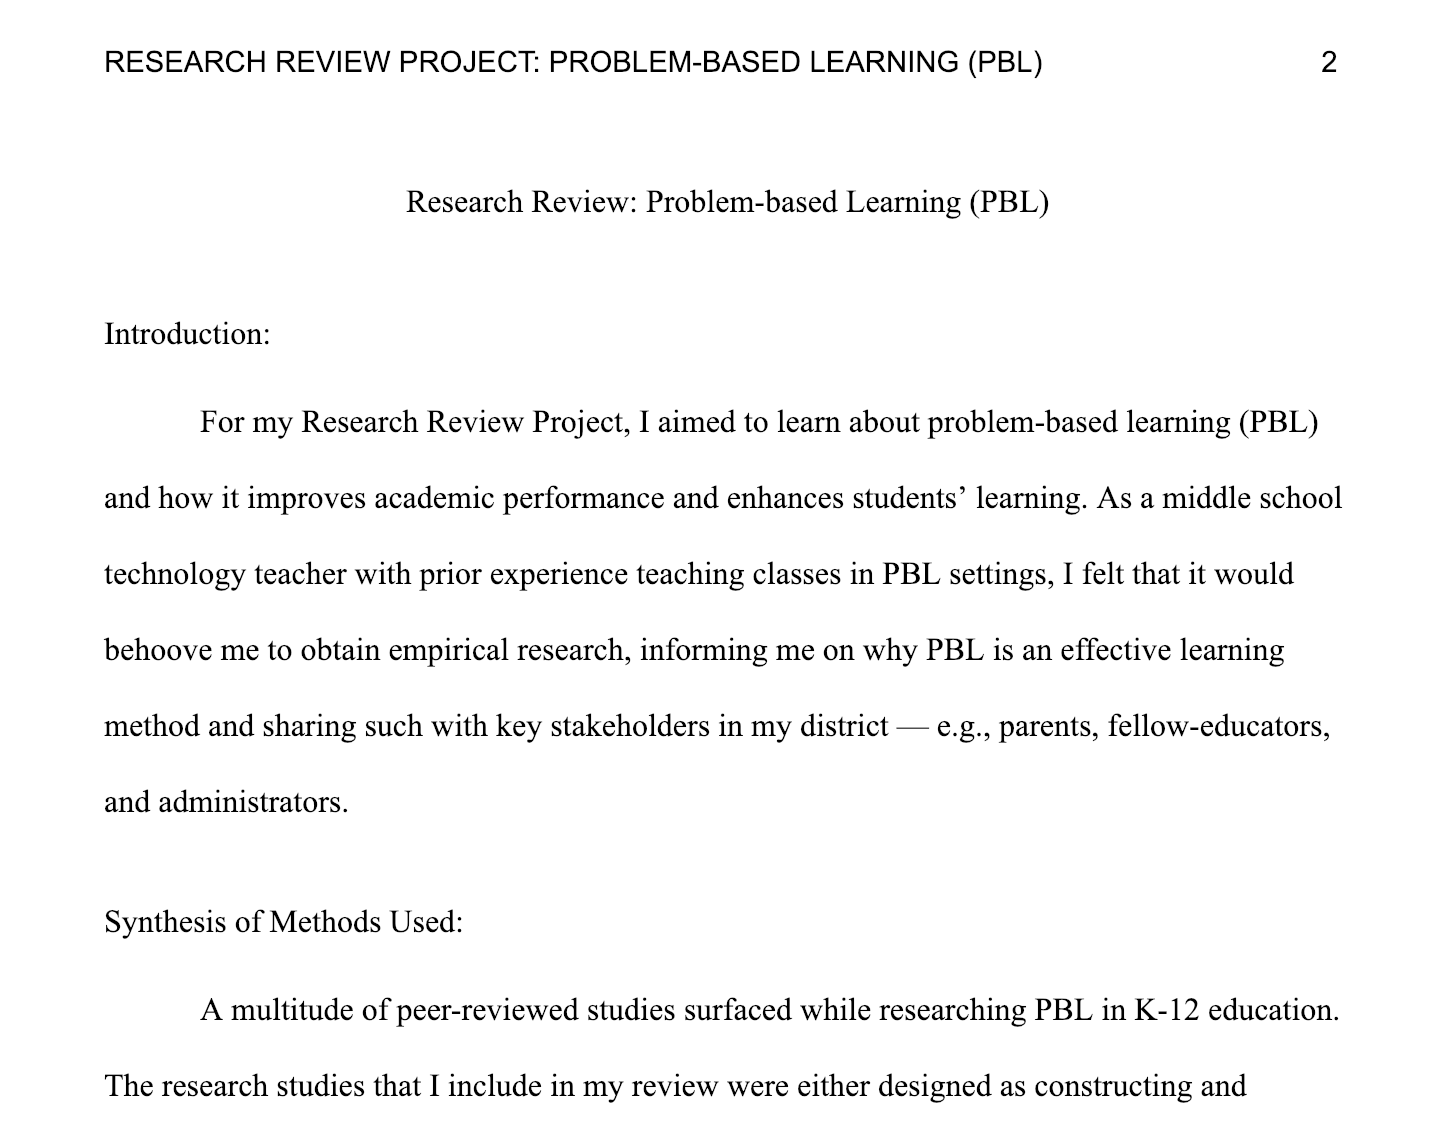 Research Review Project: Problem-based Learning (PBL) - While I have had experience with problem-based learning (PBL) in my own classes, this research paper discusses a multitude of peer-reviewed research on the topic. It showcases evidence on how PBL supports students' learning, most notably by furthering students' comprehension of concepts, knowledge acquisition, cognitive functioning, capacity to transfer learning to authentic settings, and engagement in the learning process. This work demonstrates my ability to cultivate and synthesize peer-reviewed research, and articulate the benefits of a pedagogical decisions in education.